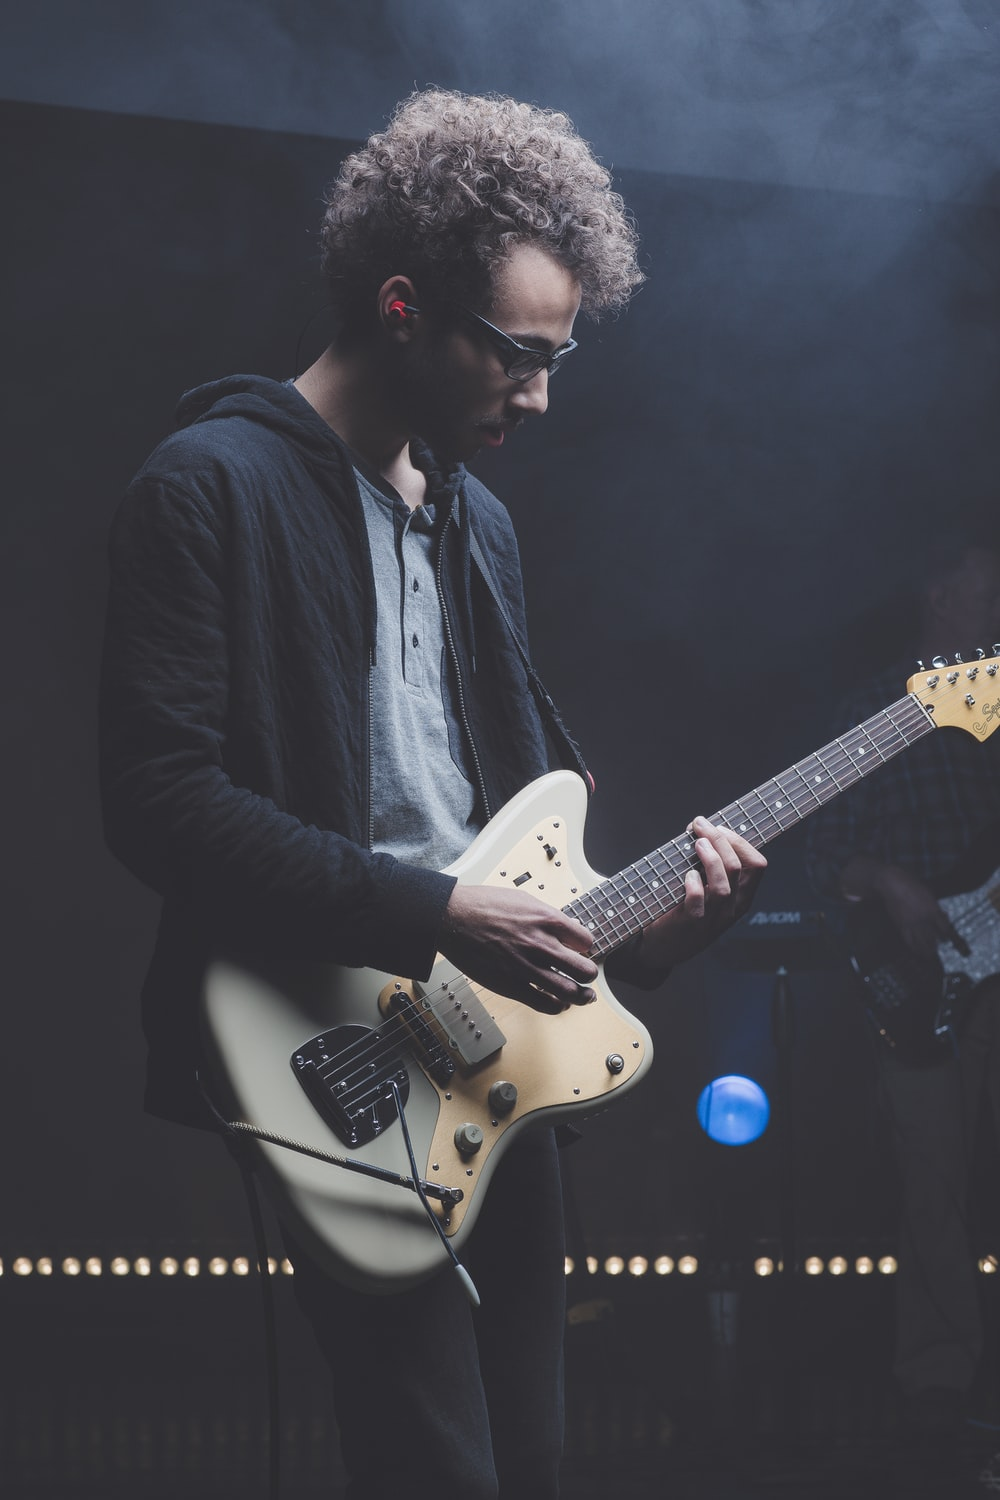 man playing with electric guitar